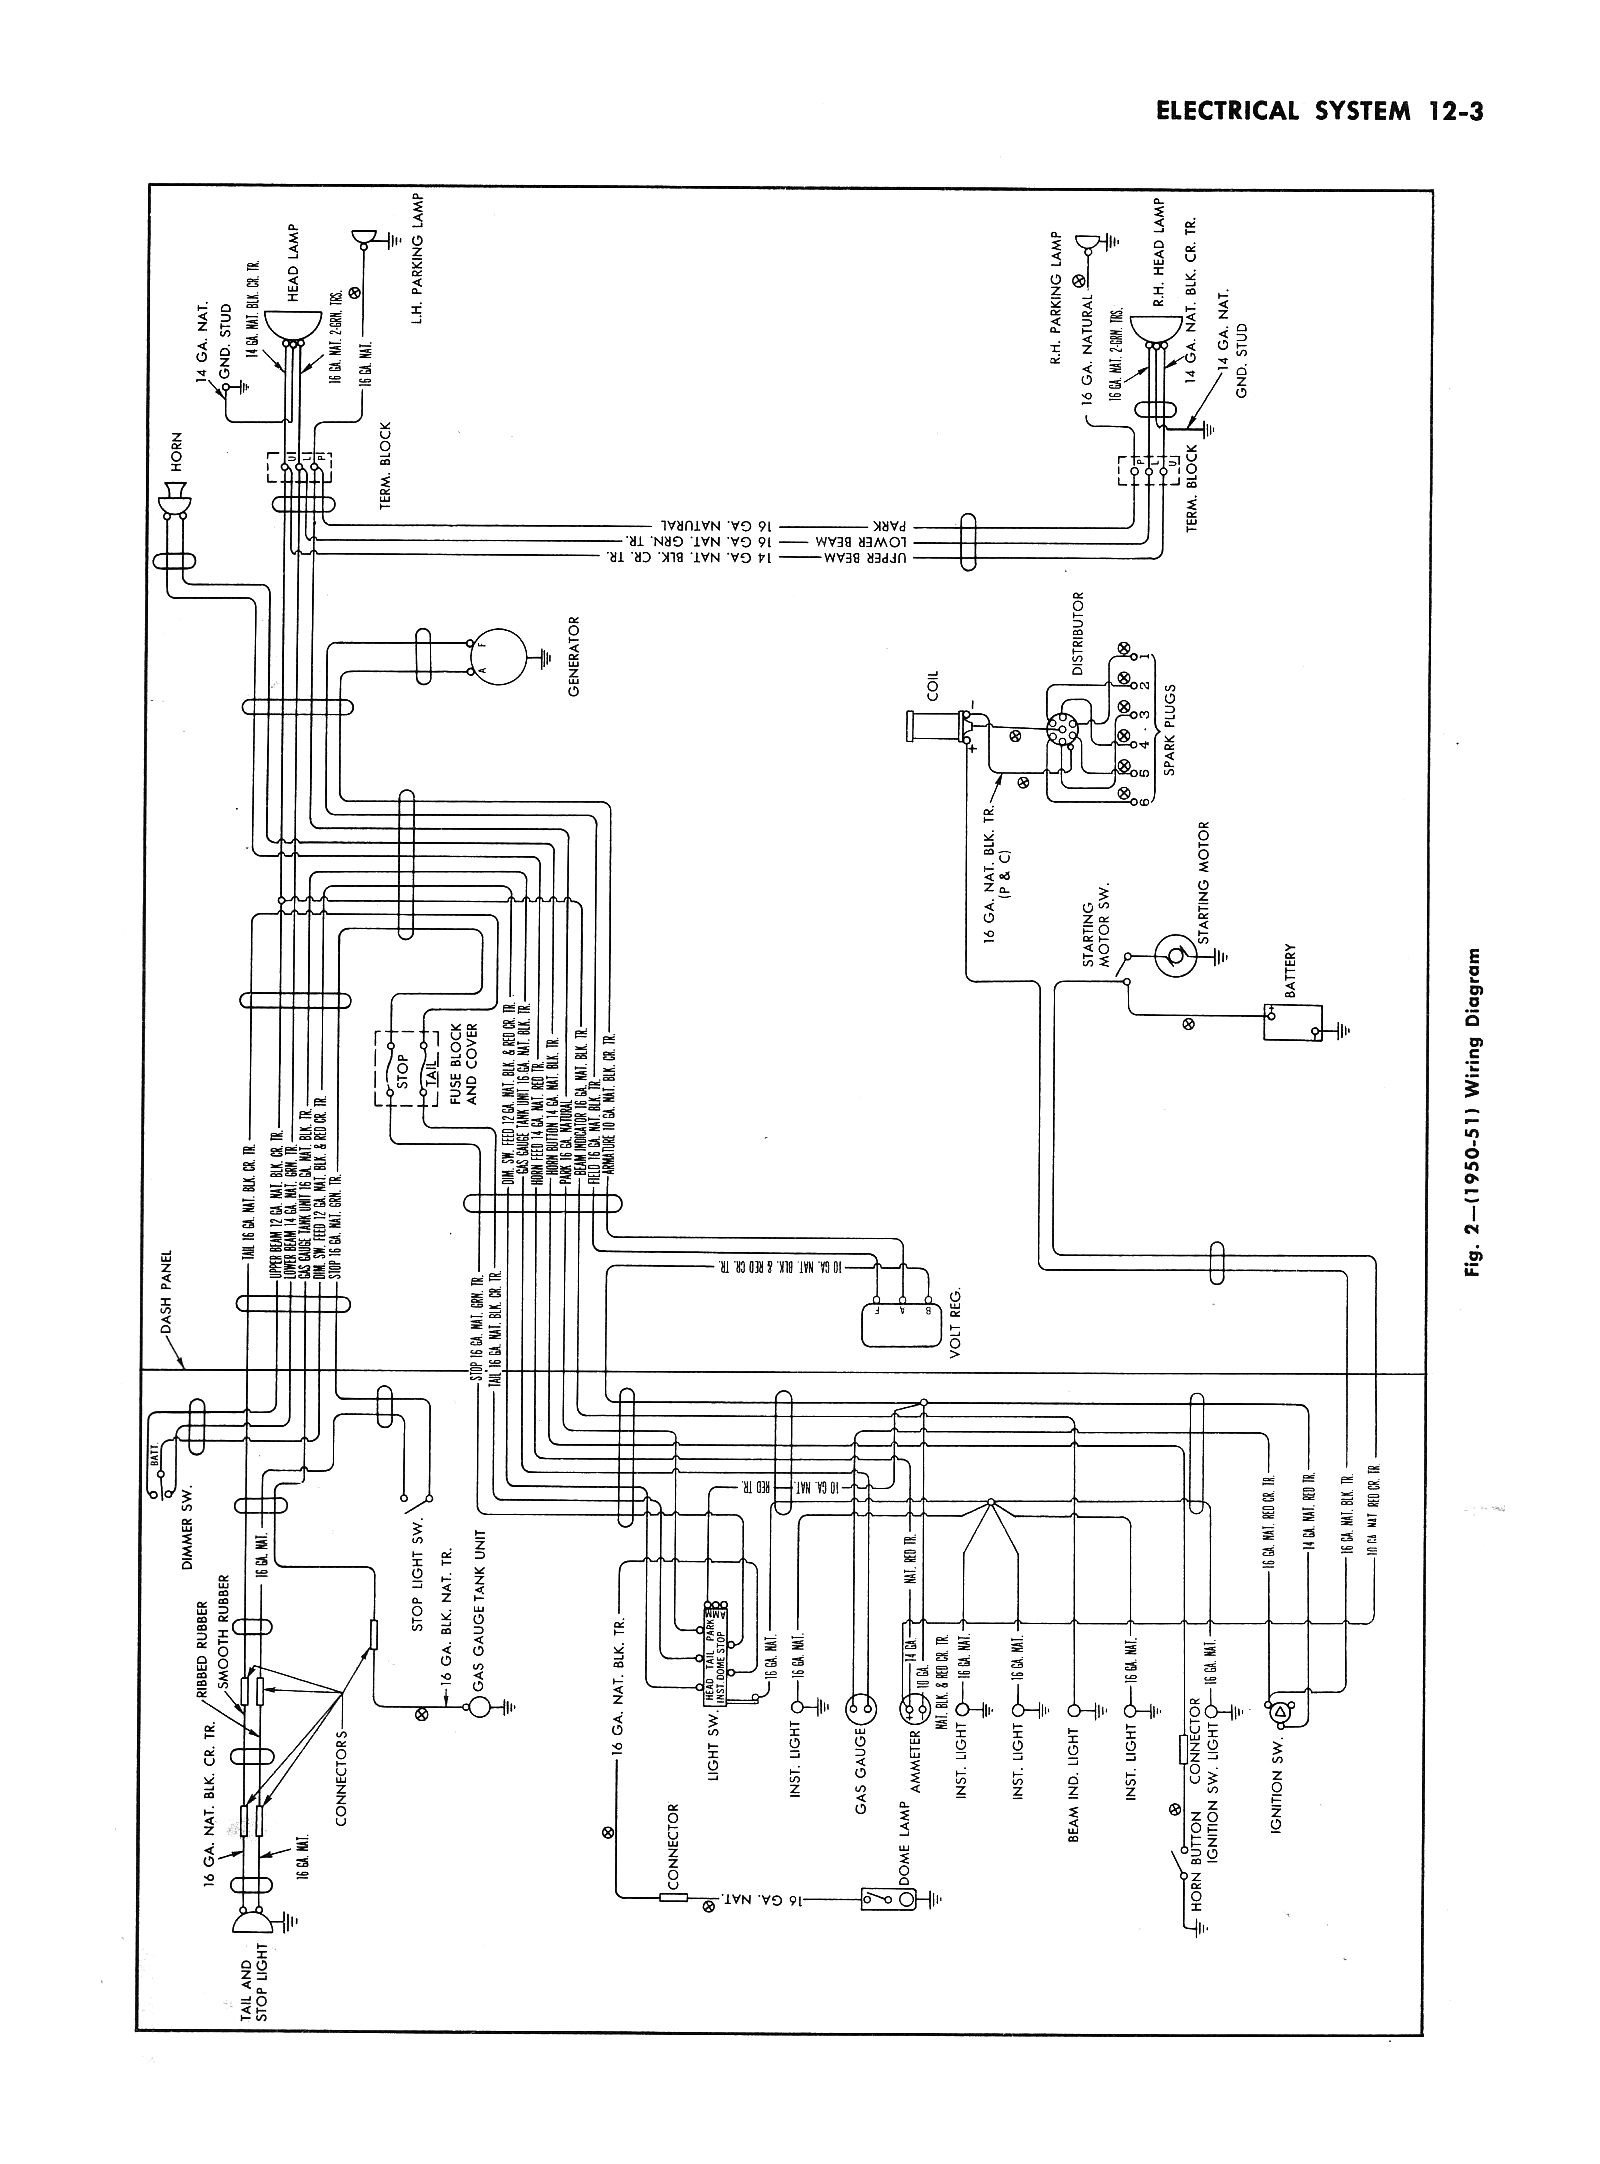 50ctsm1203 chevy wiring diagrams 66 Chevy Headlight Switch Wiring Diagram at bakdesigns.co